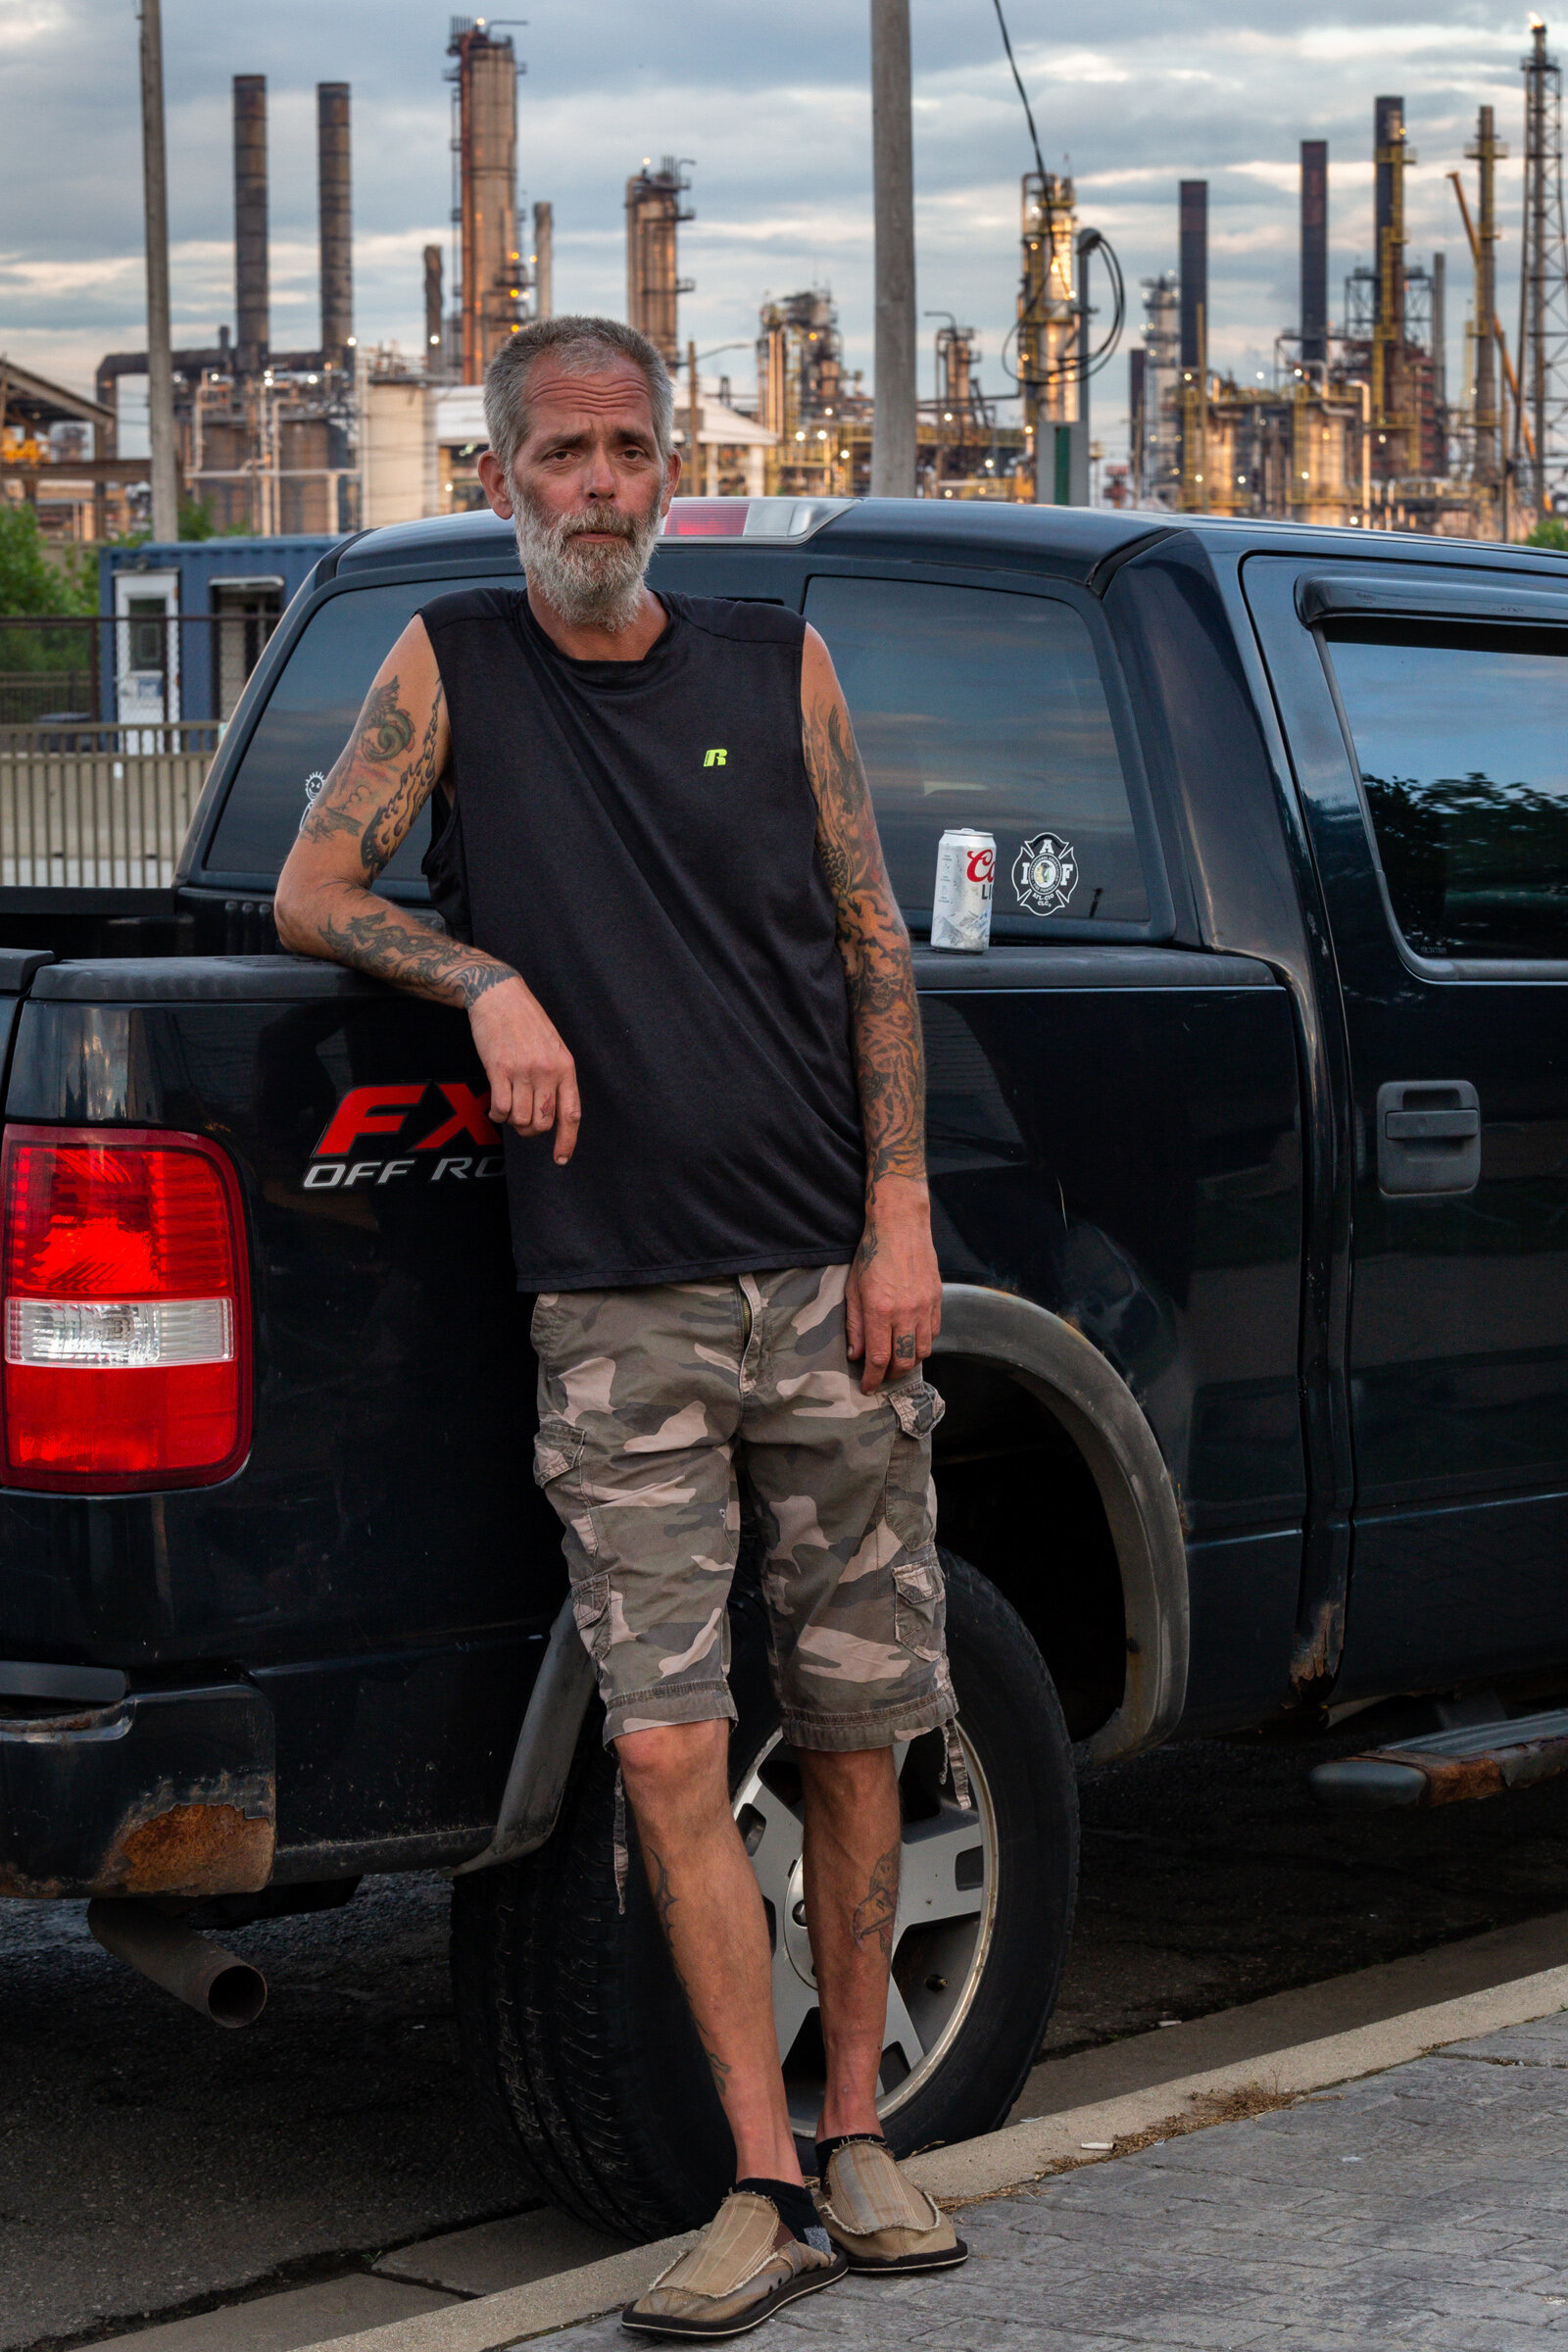 Figure 16. Resident Across the Street from the Whiting Refinery, July 2019. Photograph by Matthew Kaplan.